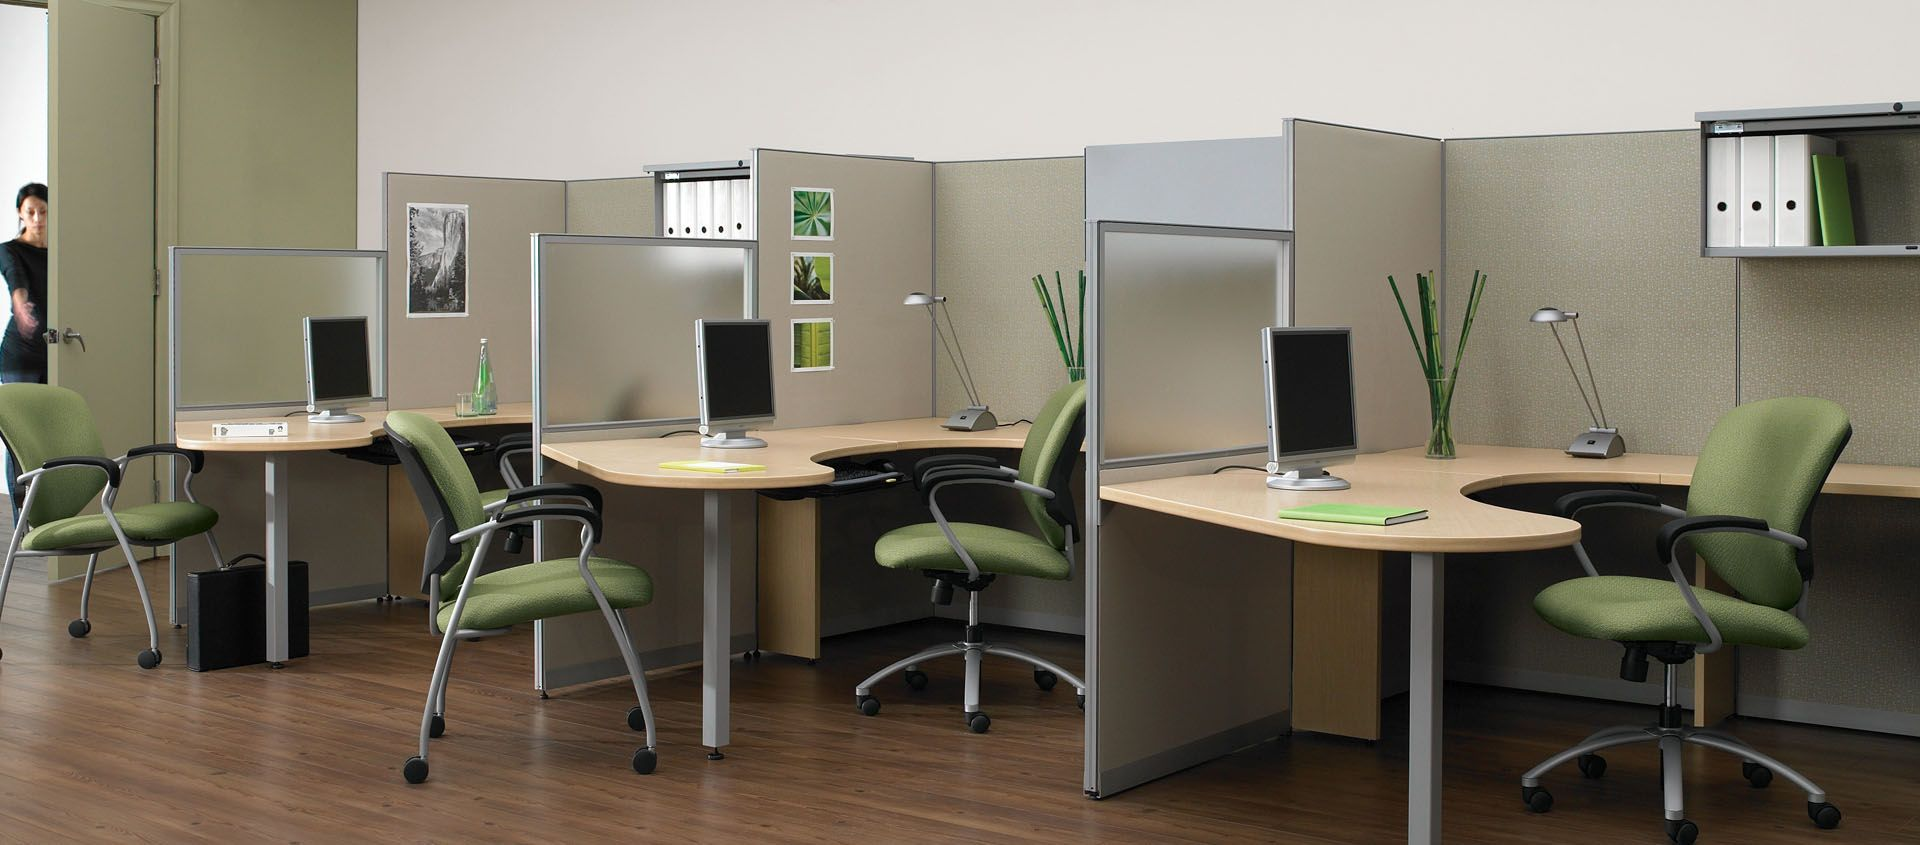 slide 1 systems furniture in 2019 office cubicle used office rh pinterest com